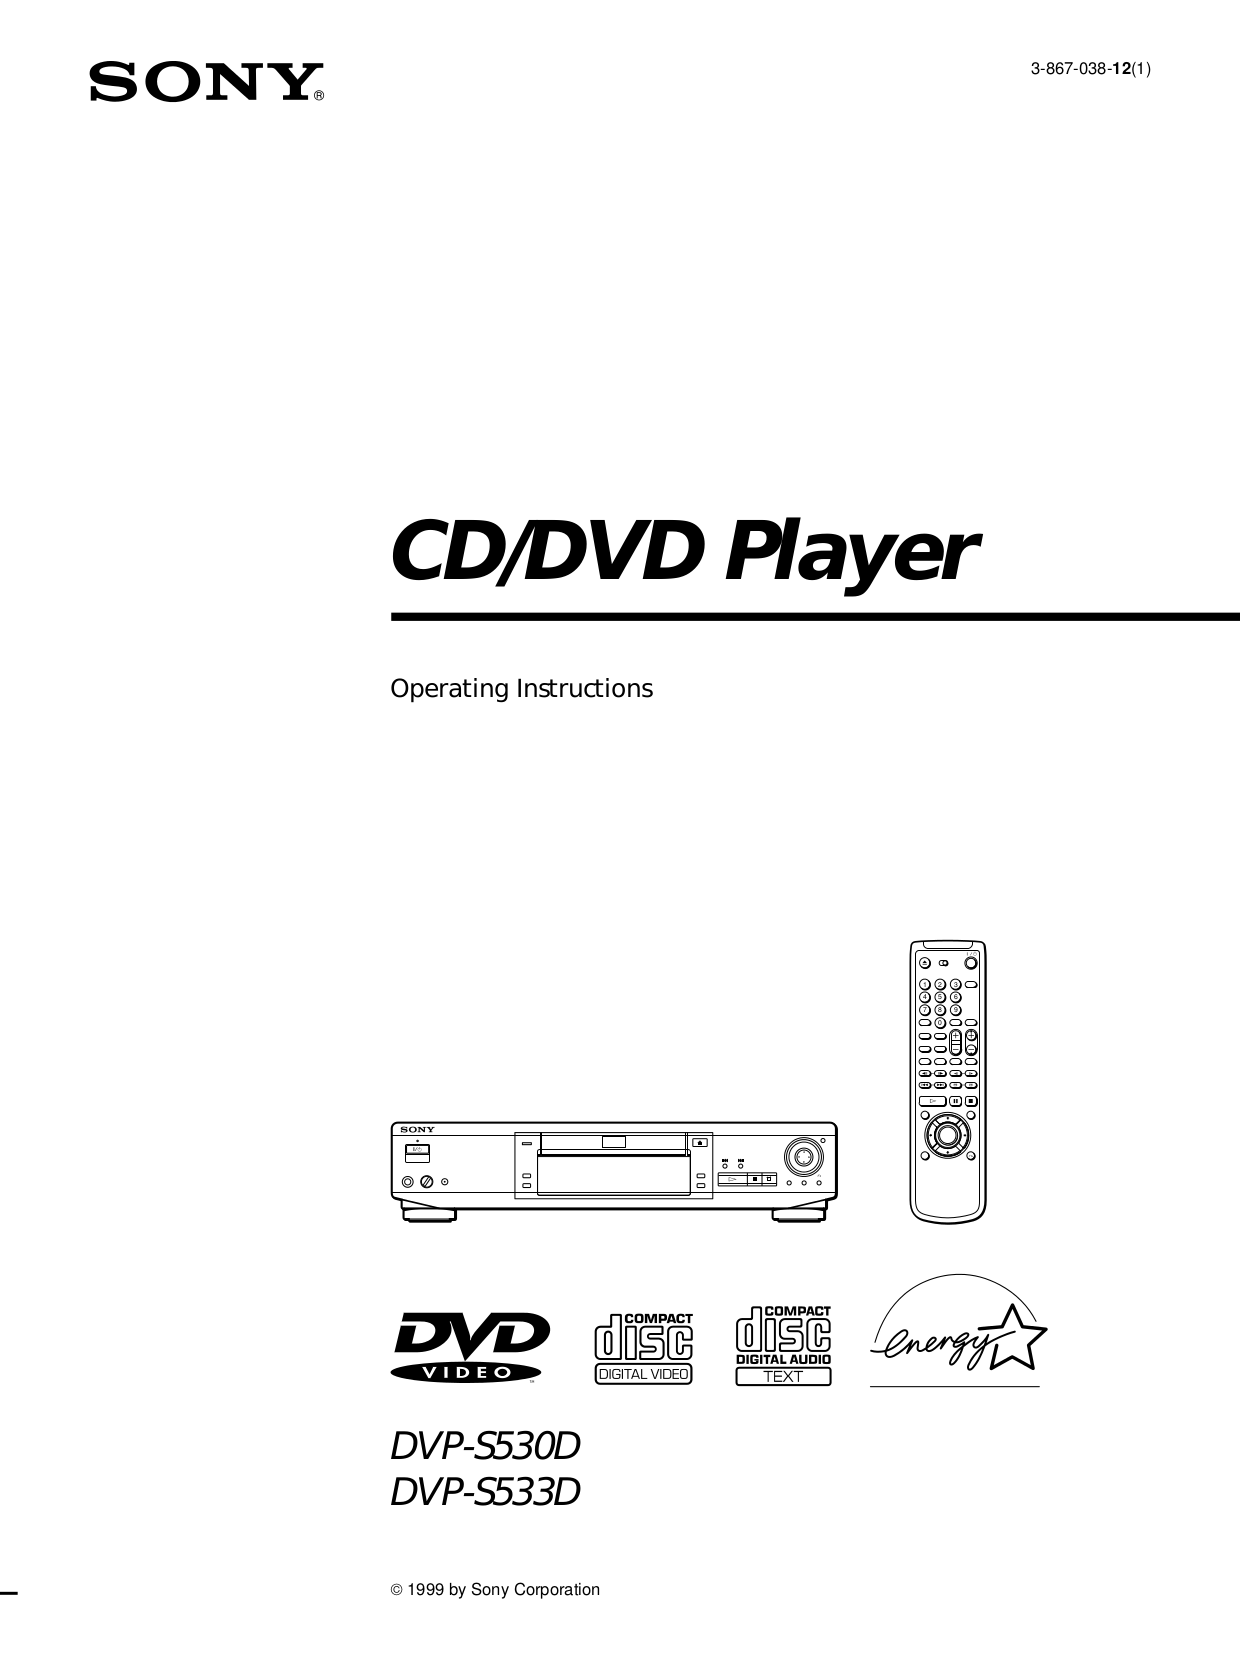 Download free pdf for Sony DVP-S530D DVD Players manual